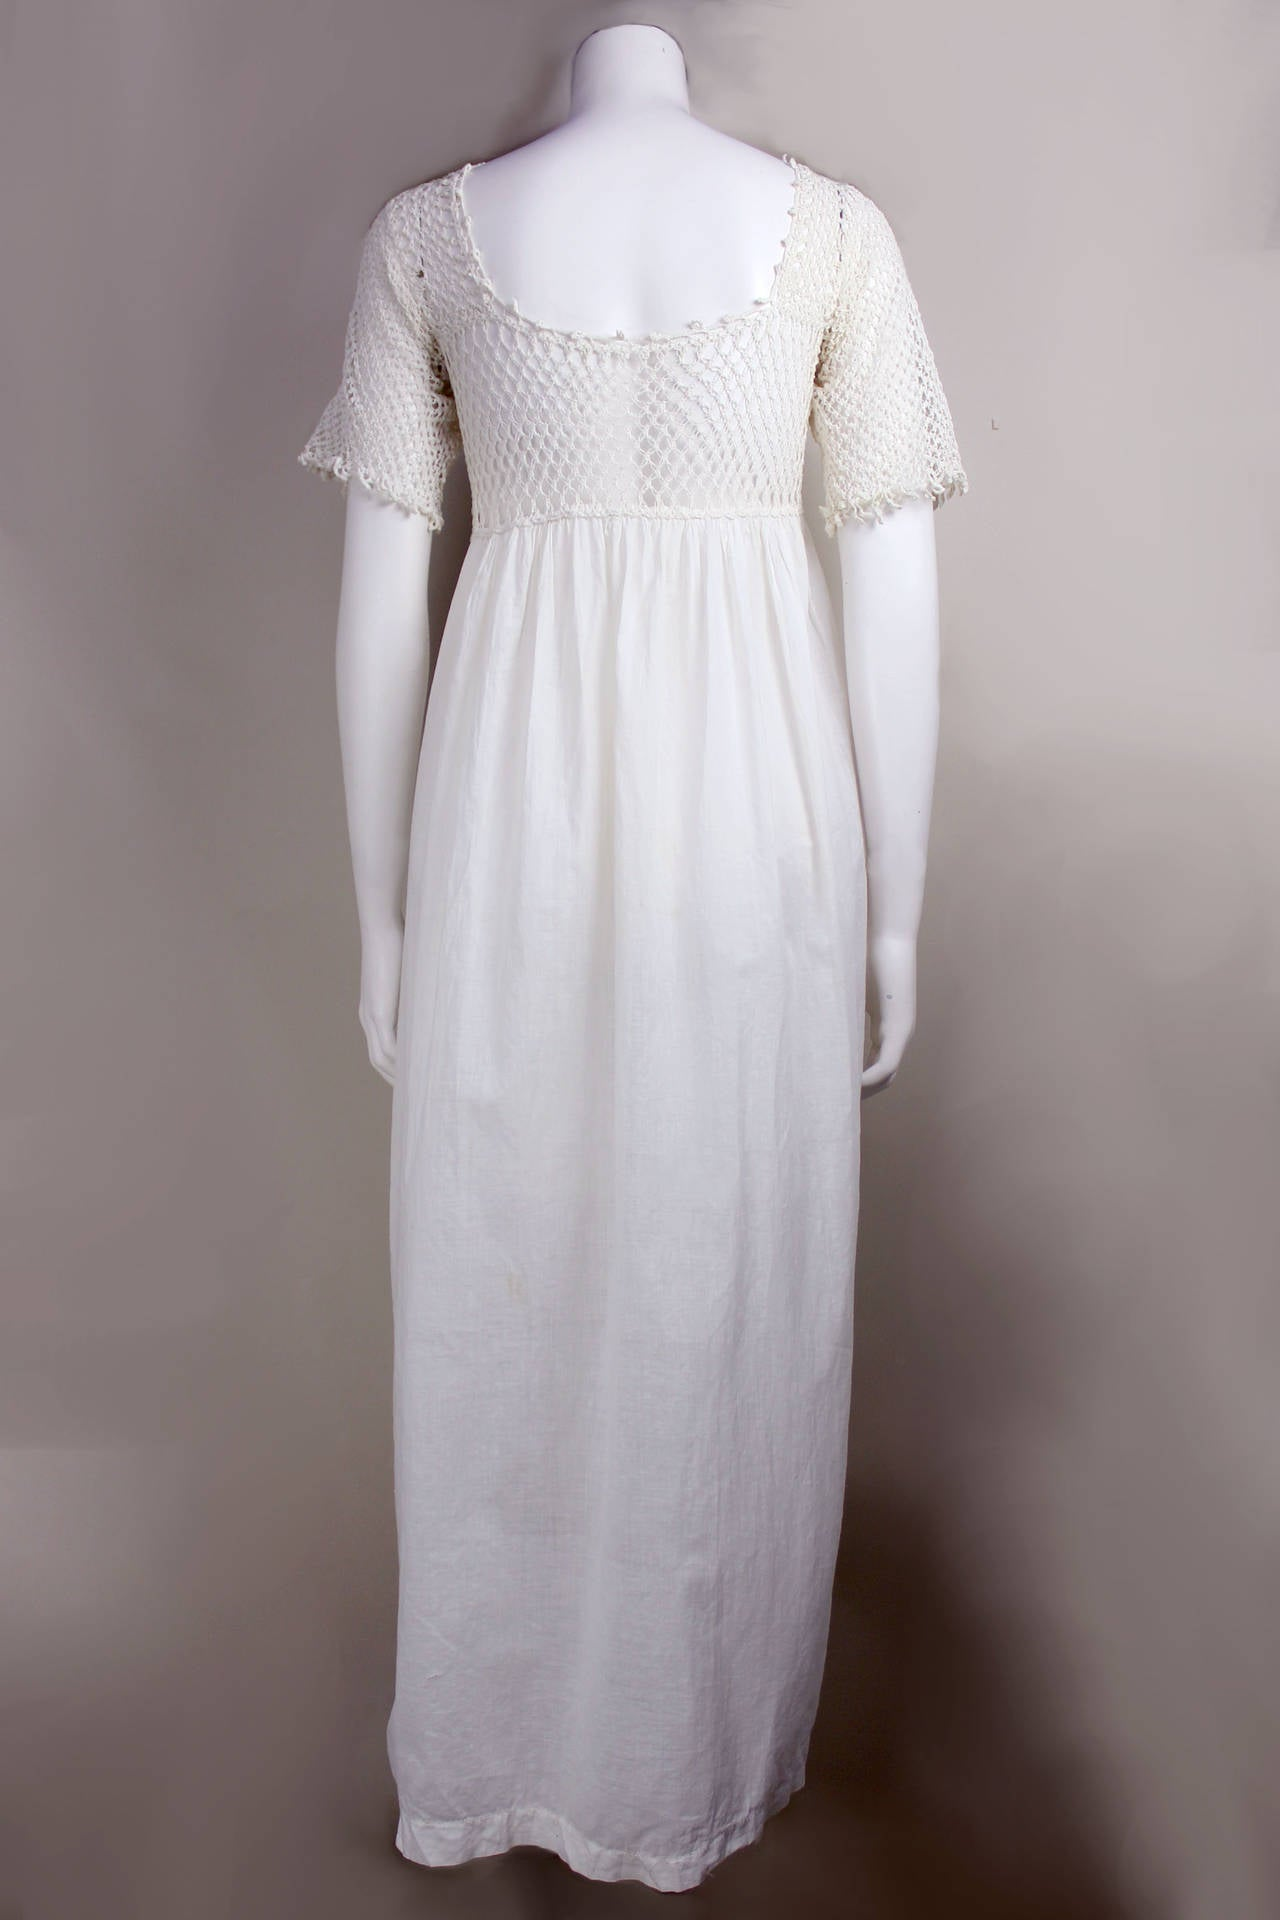 Romantic Edwardian Nightgown In Good Condition For Sale In New York, NY